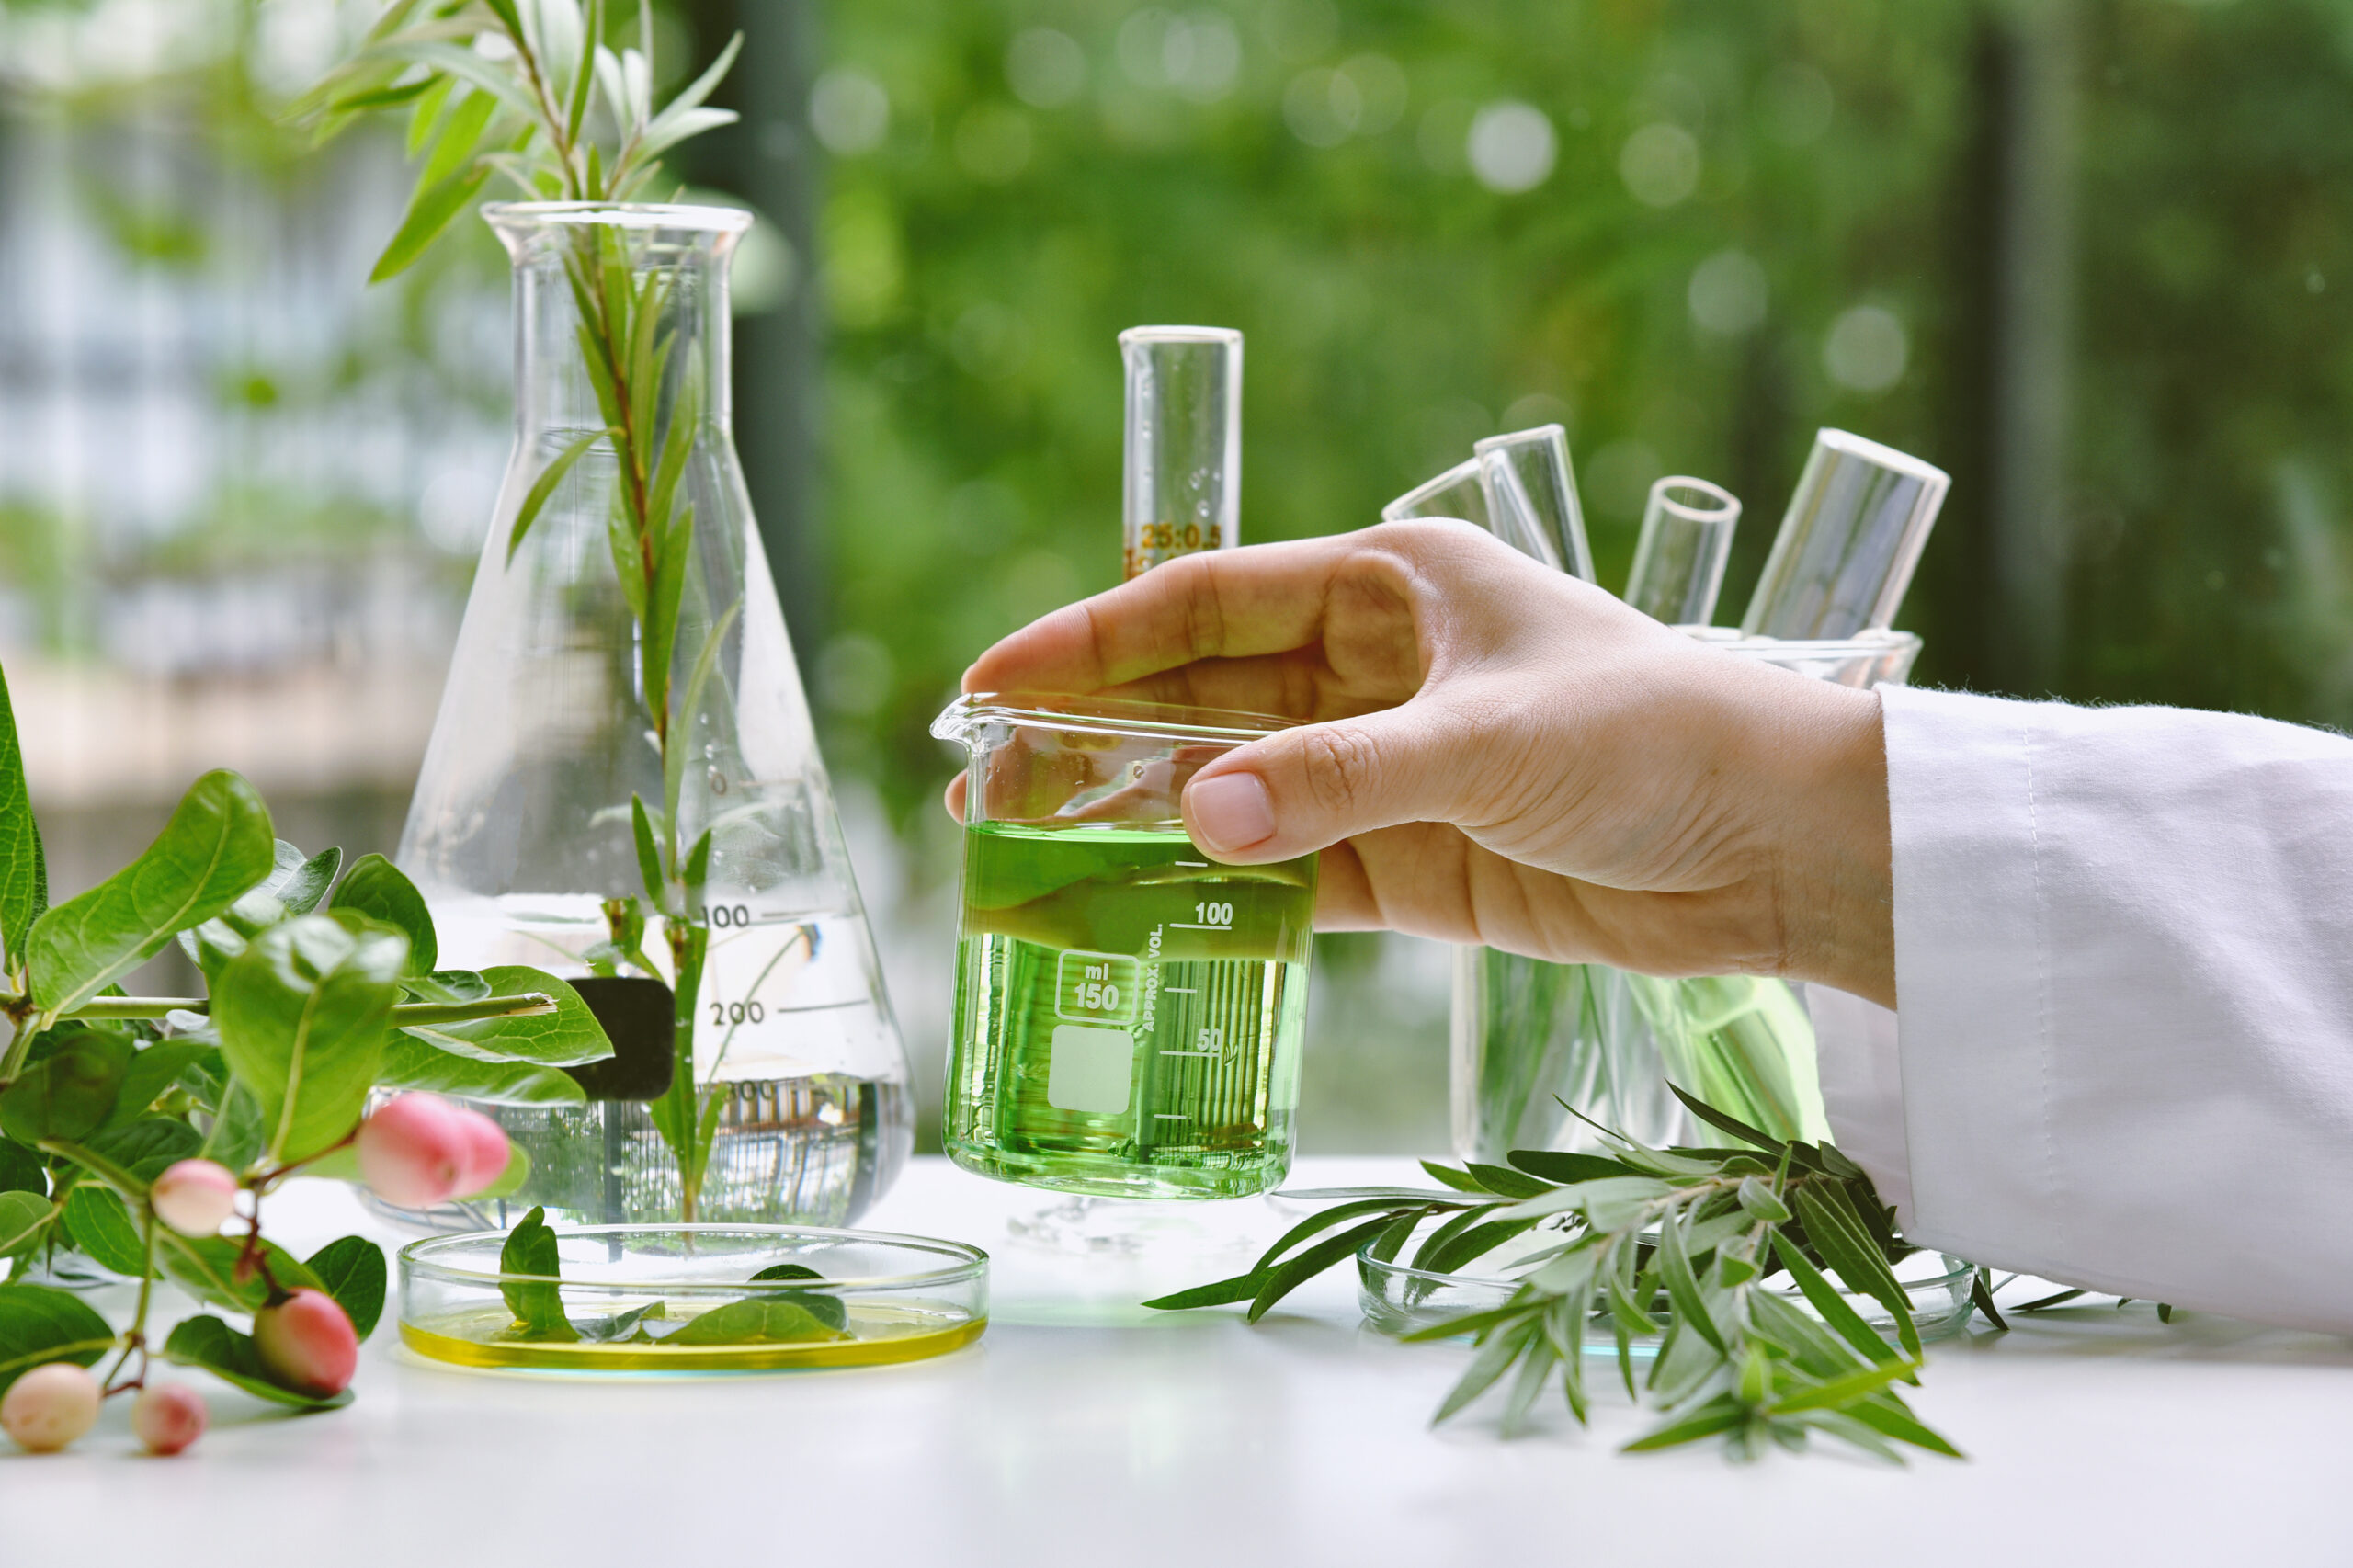 Scientist_natural_drug_research_organic_scientific_extraction_medicine_cannabis_products_Laboratory